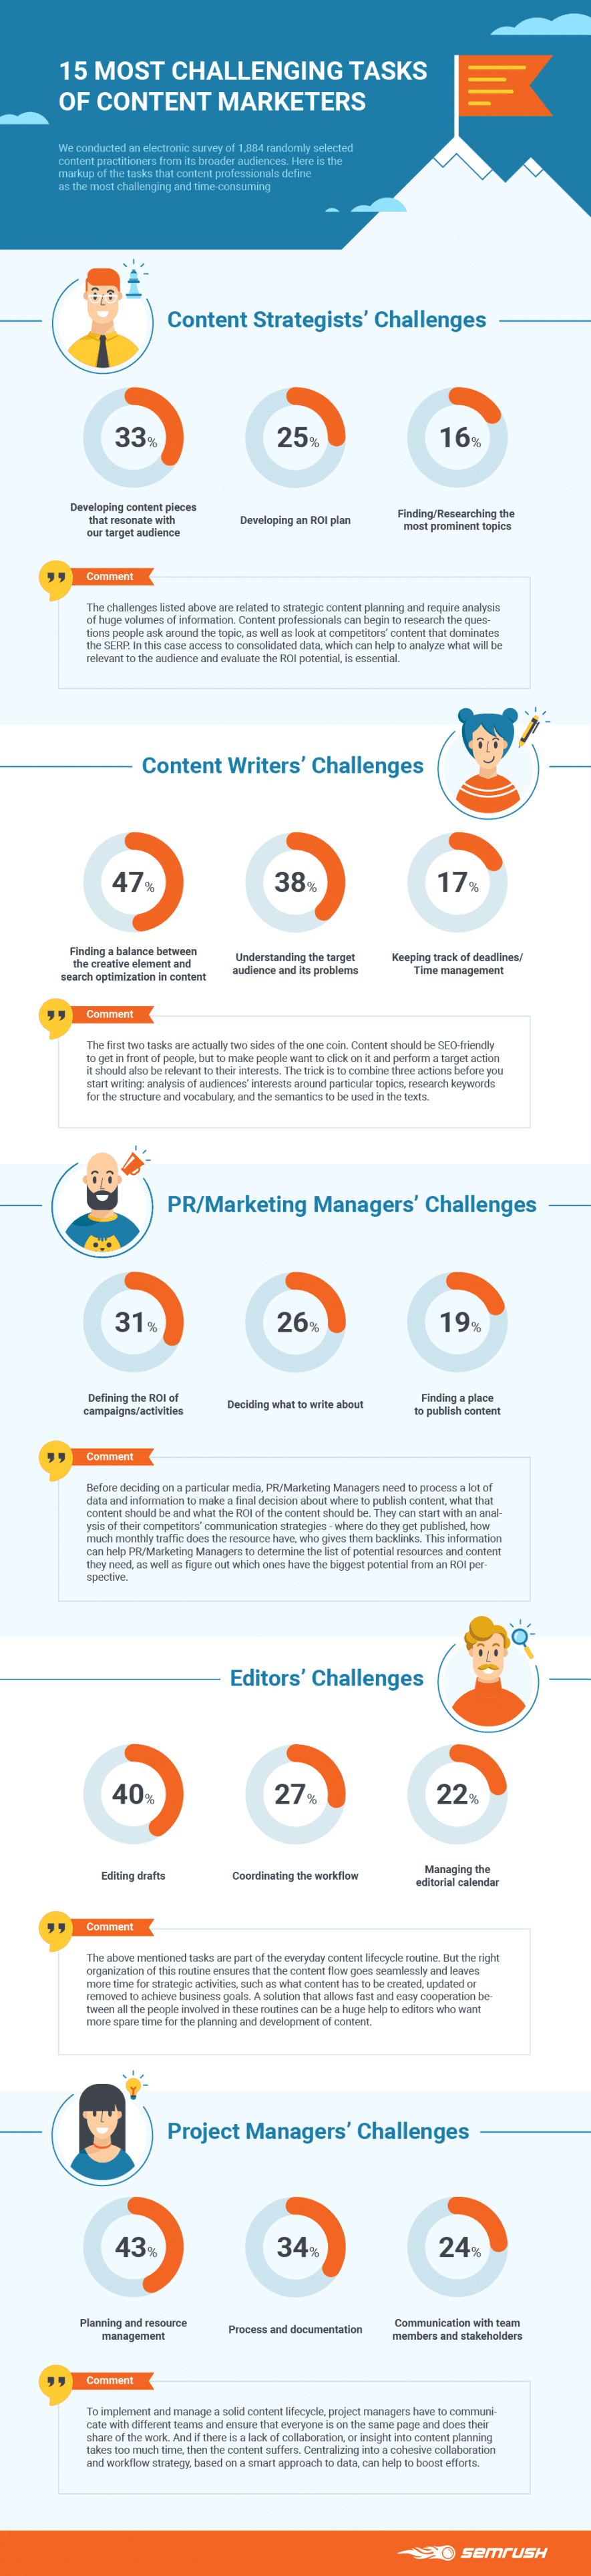 DFM Content Marketing Challenges Infographic